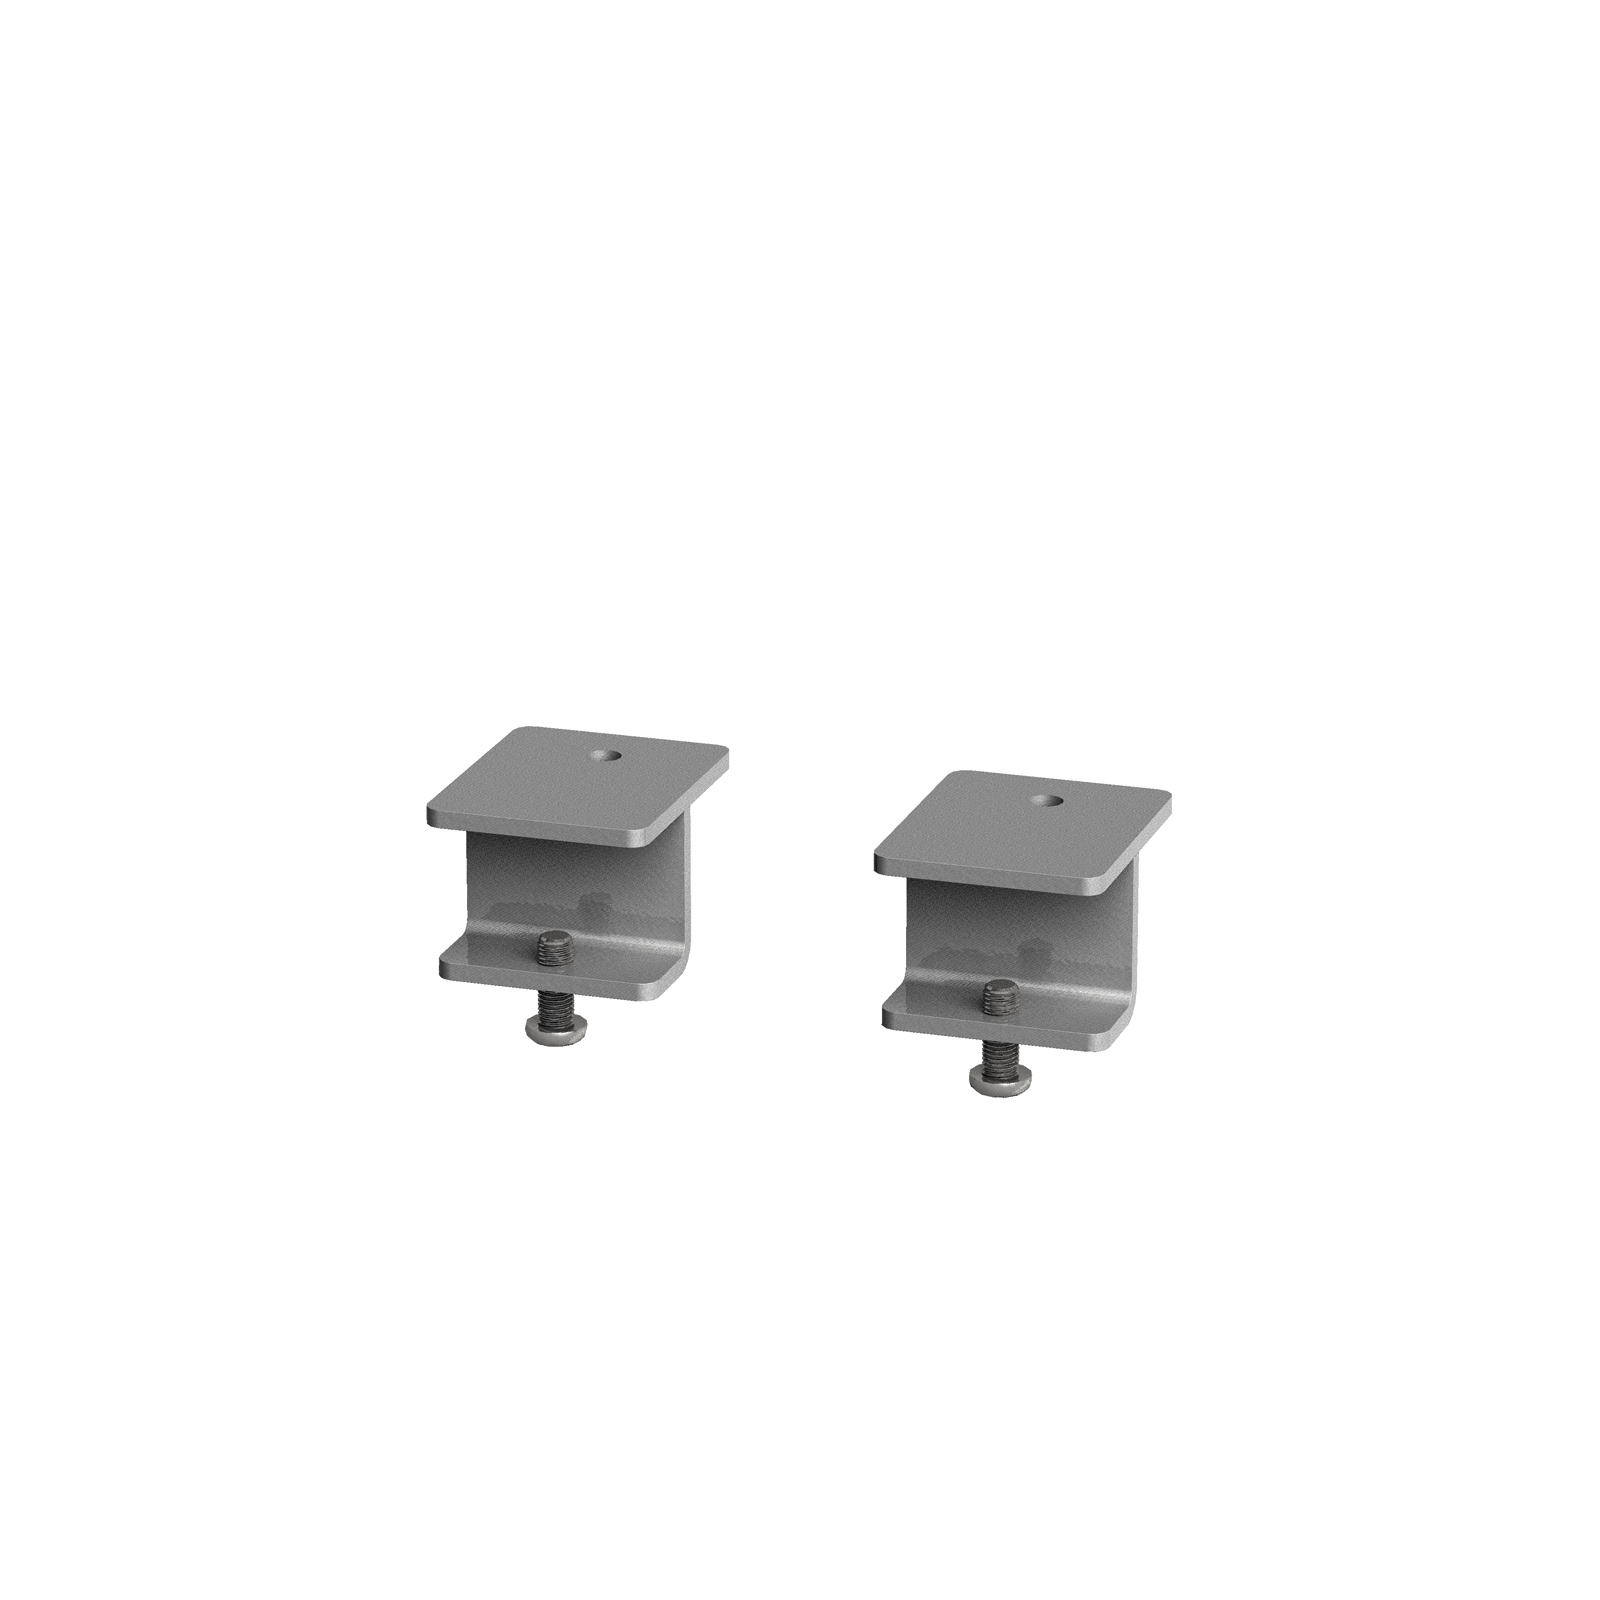 Dams Adv Screen Brackets Glazed - Adapt Single Bench